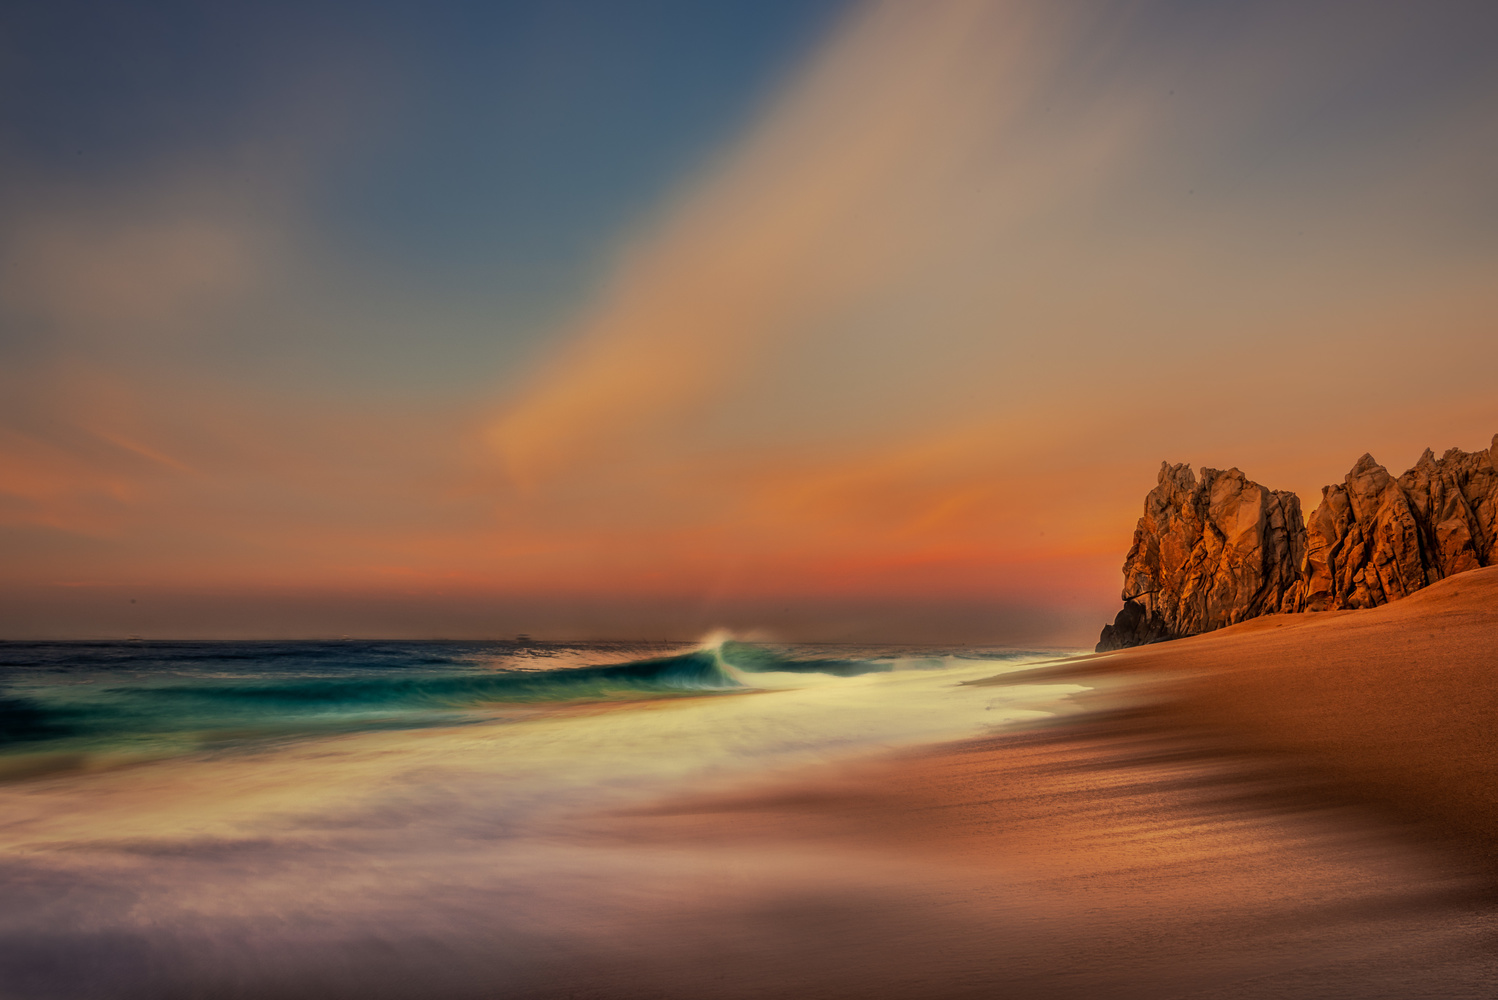 Morning Wave by Alex Hill